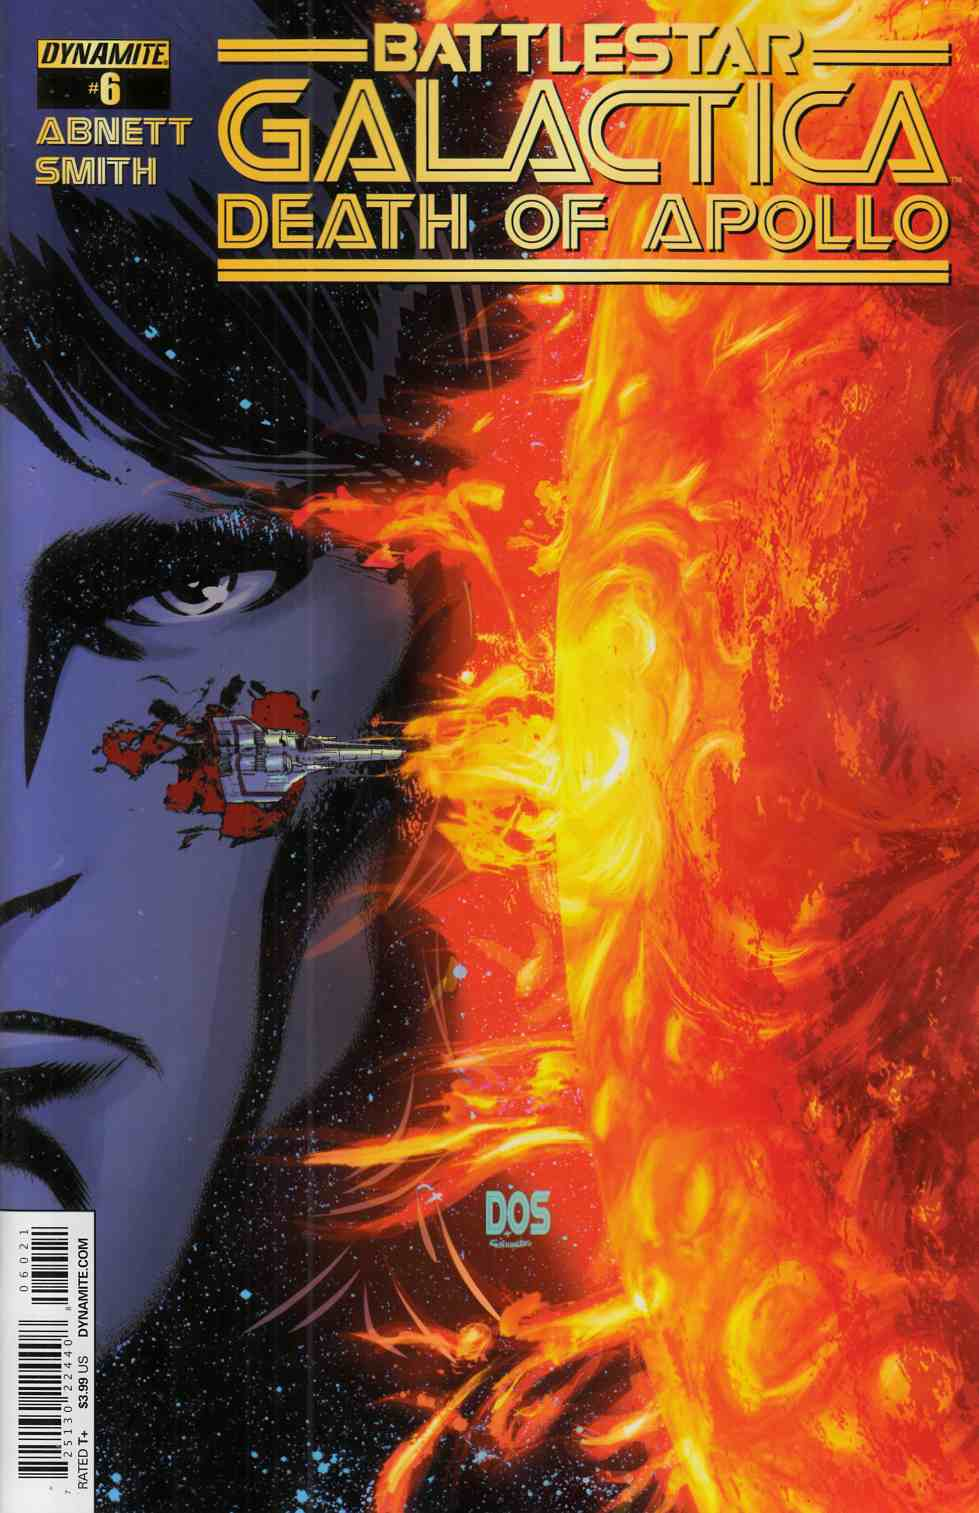 Battlestar Galactica Death Of Apollo #6 Cover B- Smith [Dynamite Comic] THUMBNAIL